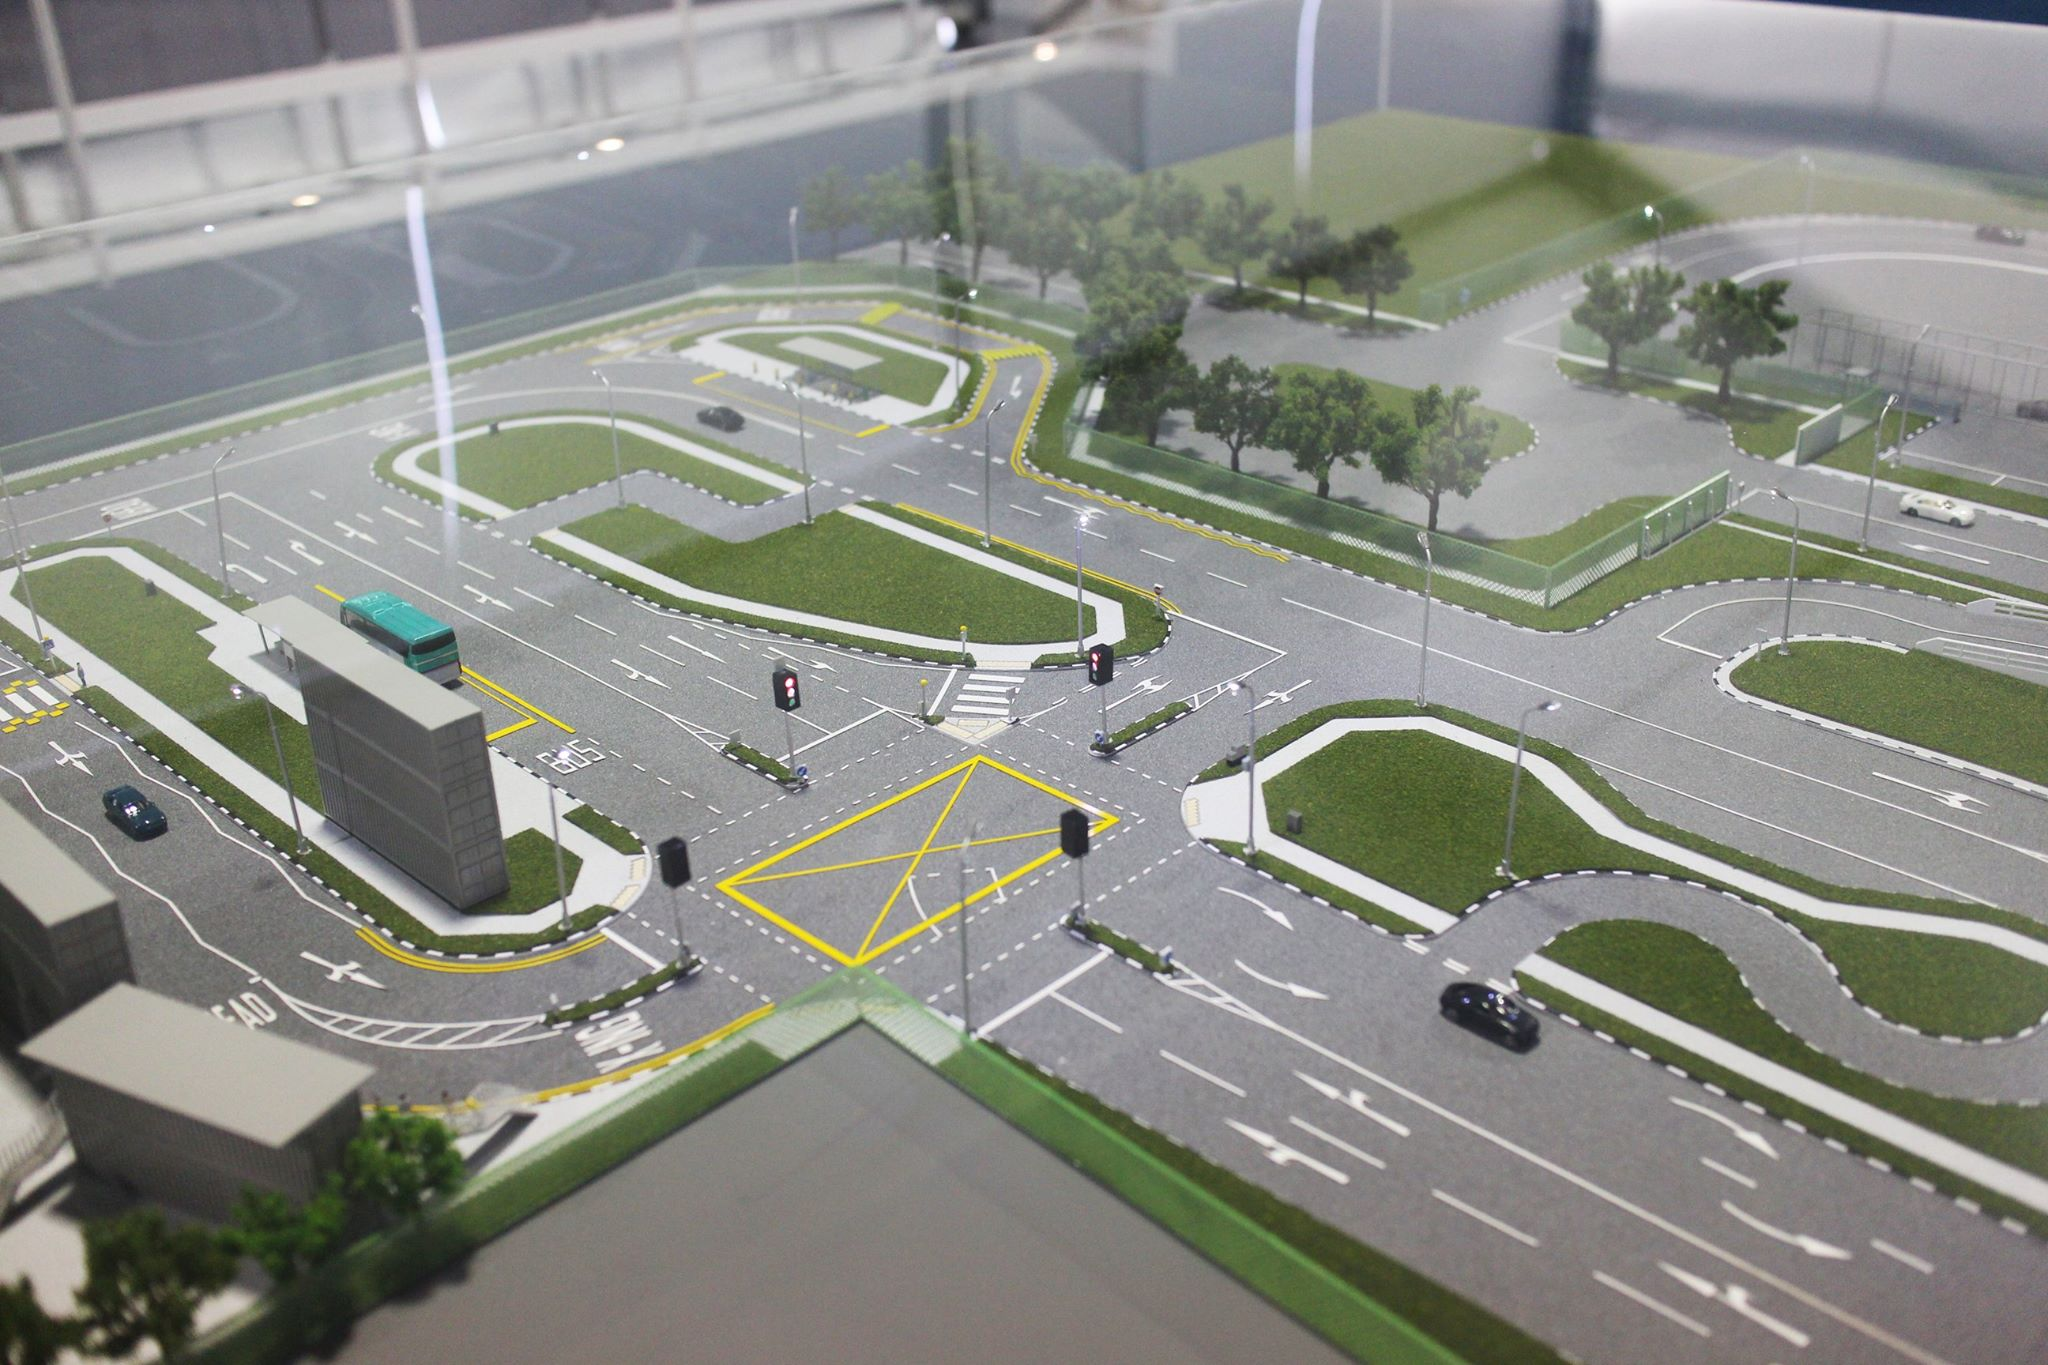 The new 2-hectare test centre CETRAN will spearhead research for the safe deployment of driverless vehicles  on Singapore roads.